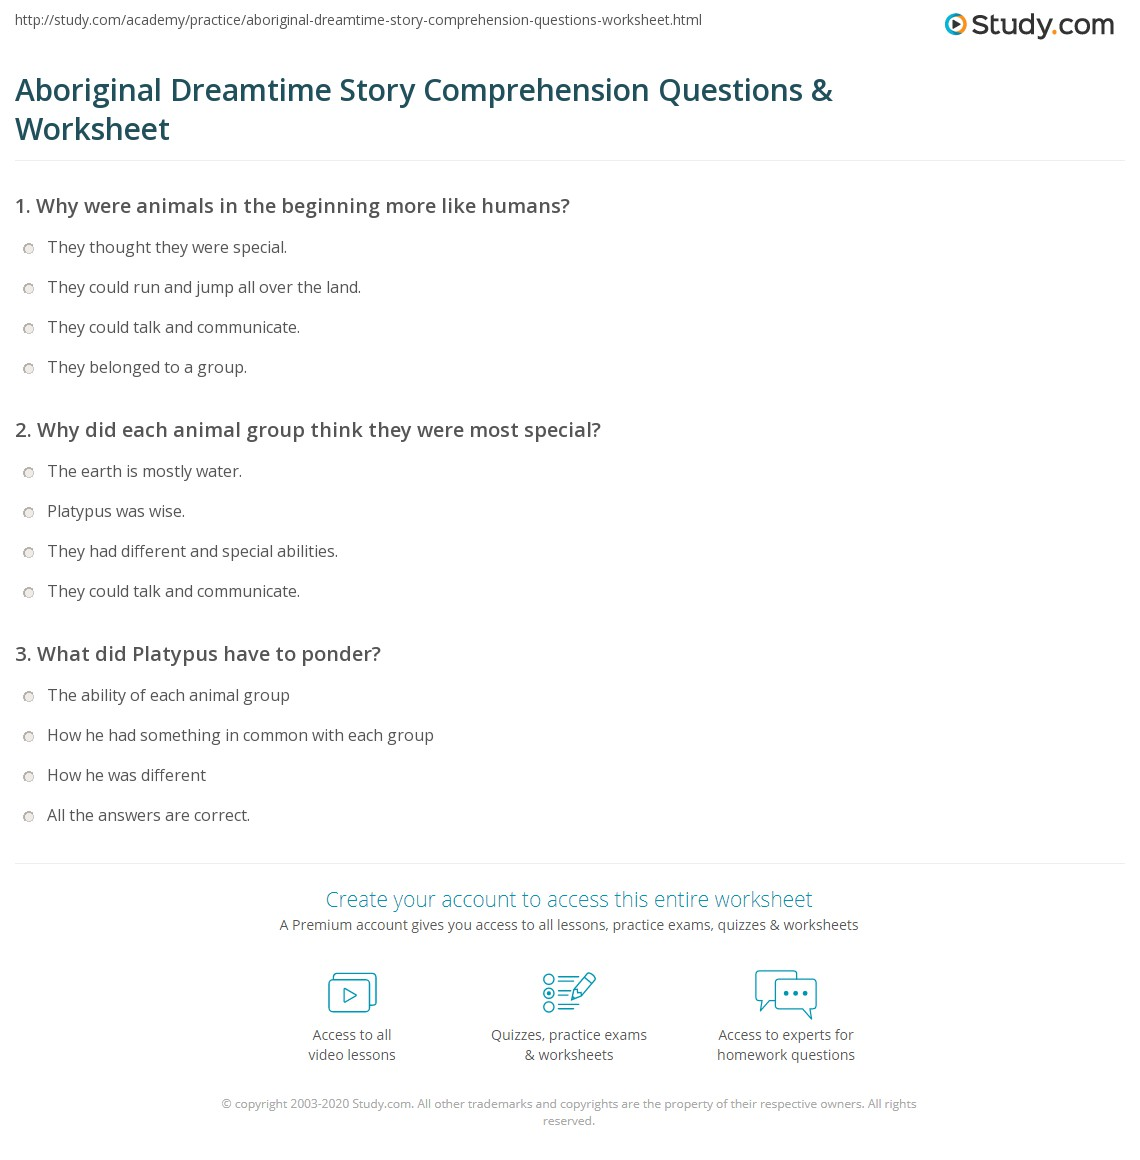 Aboriginal Dreamtime Story Comprehension Questions